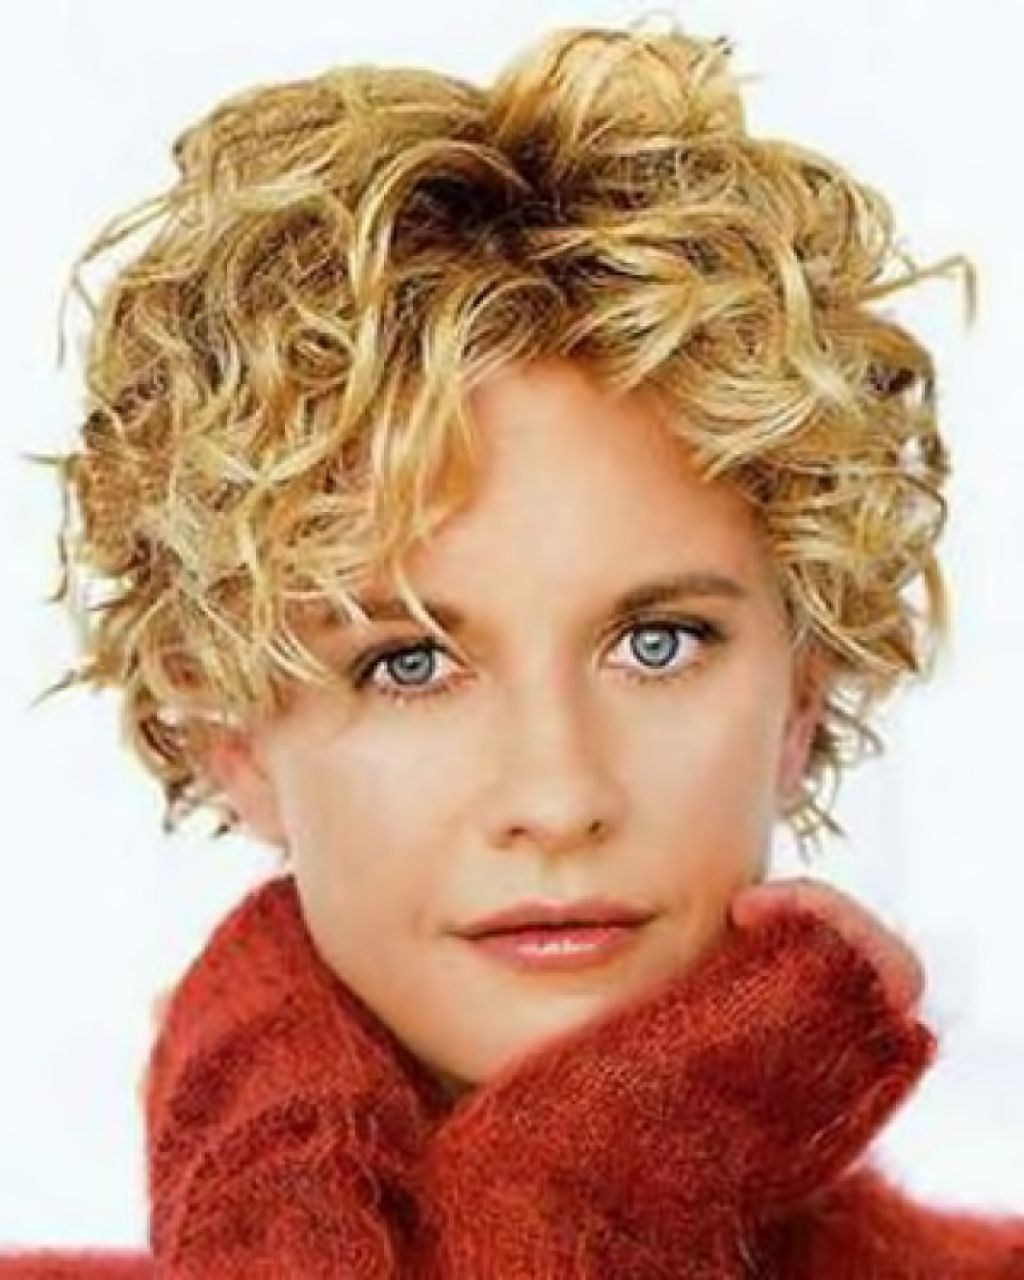 Short Curly Hairstyles For Women Over 50 Short Curly Haircuts Short Curly Hairstyles For Women Curly Hair Styles